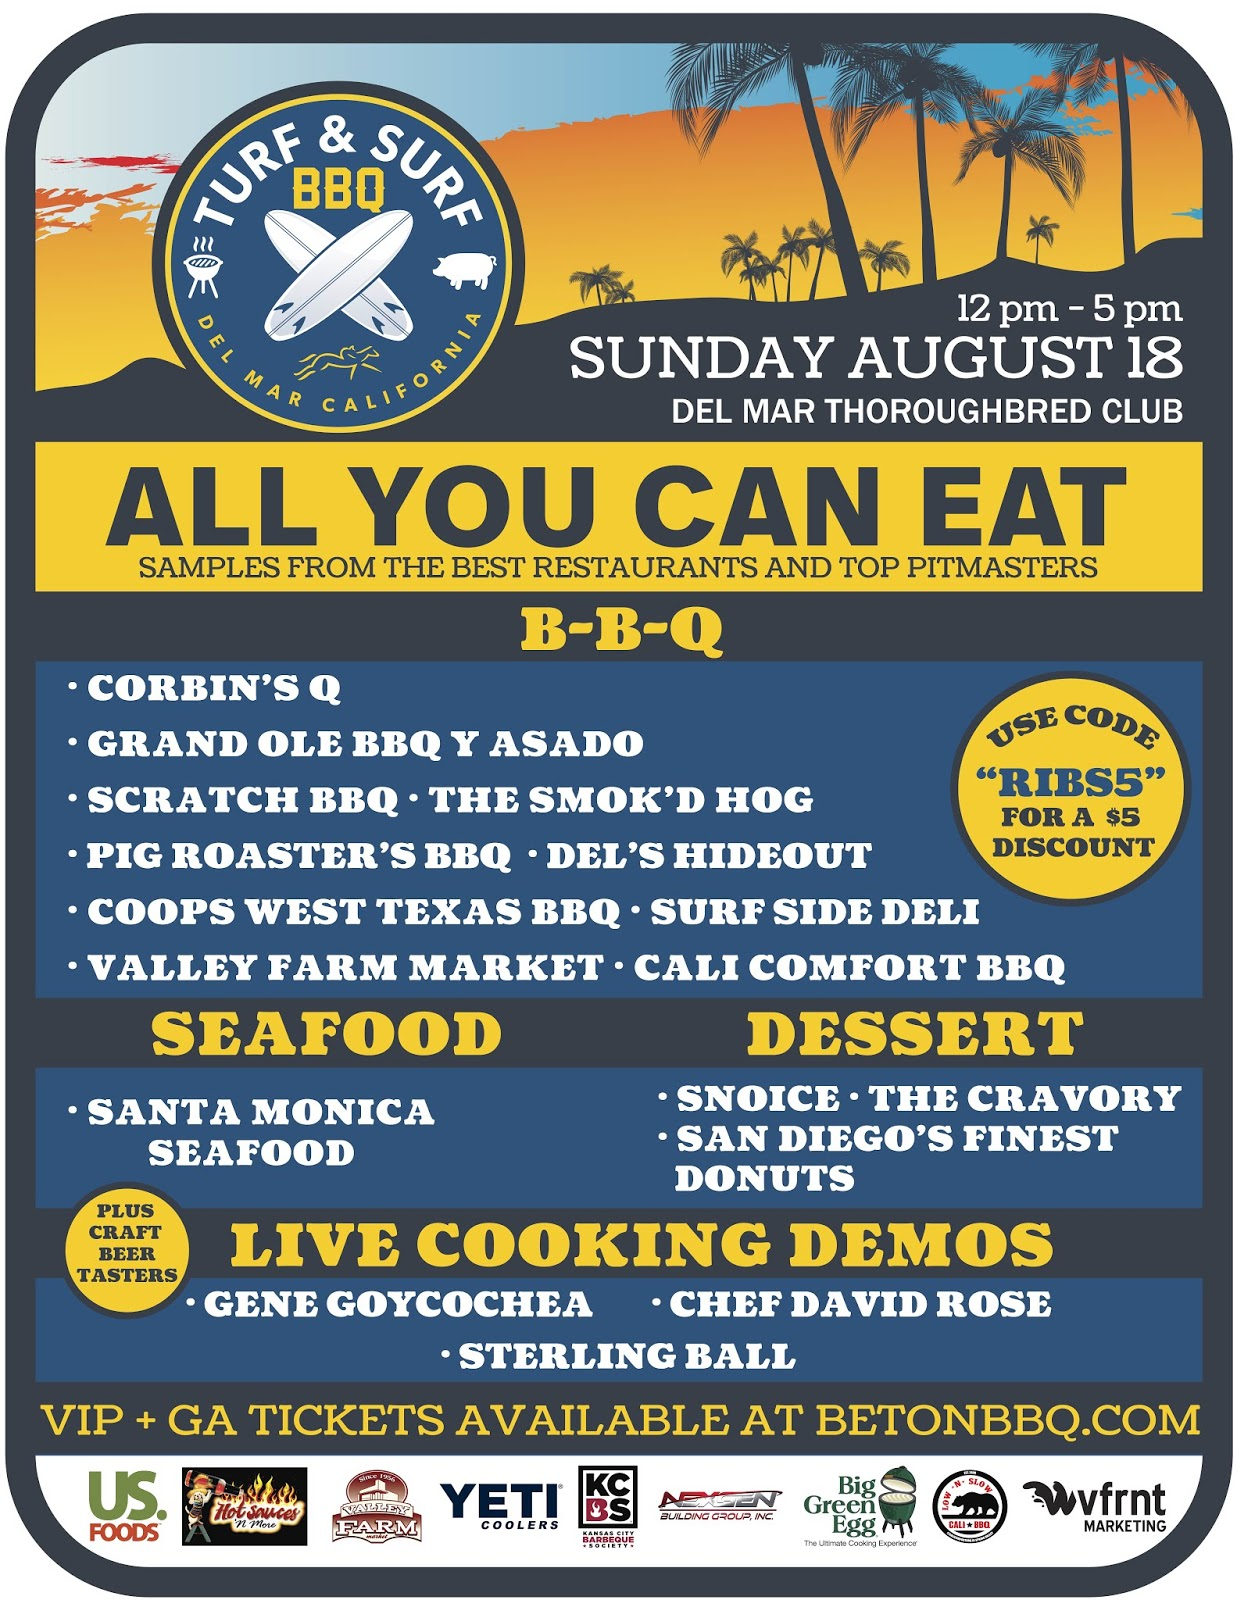 Turf & Surf BBQ Championship Returns To Del Mar Racetrack on Sunday, August 18!